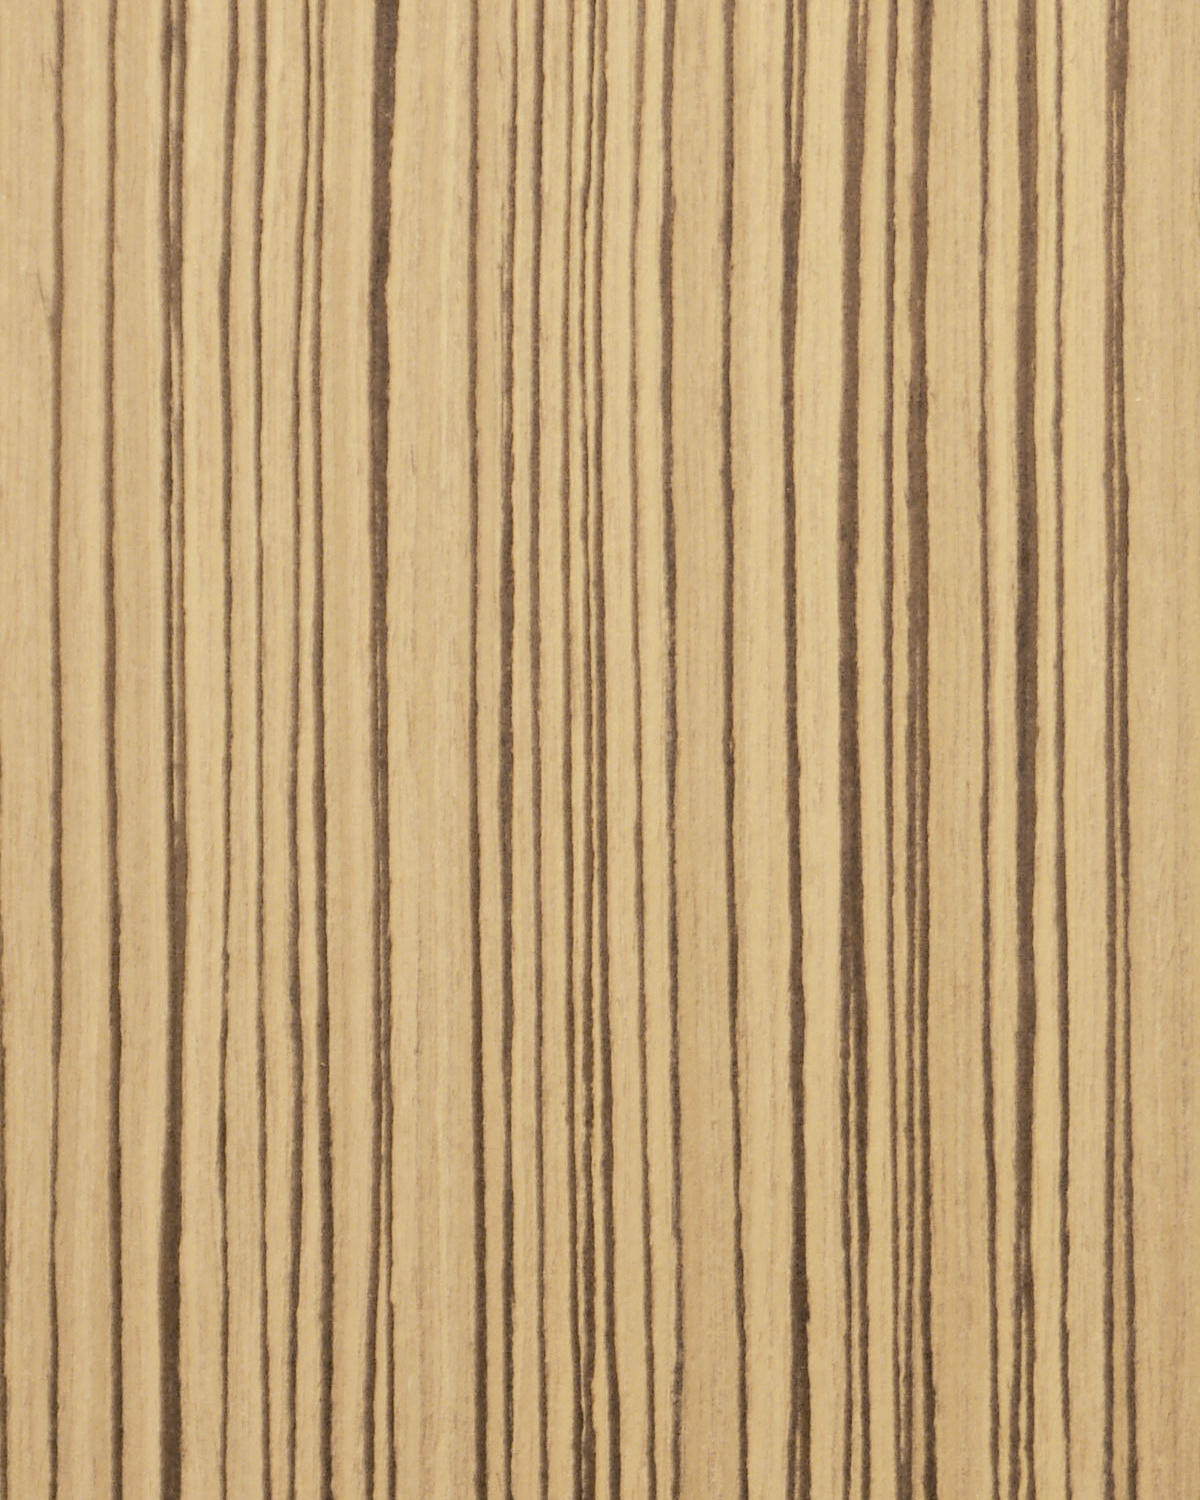 68004 Zebrawood Straight Grain Unfinished Wood Veneers